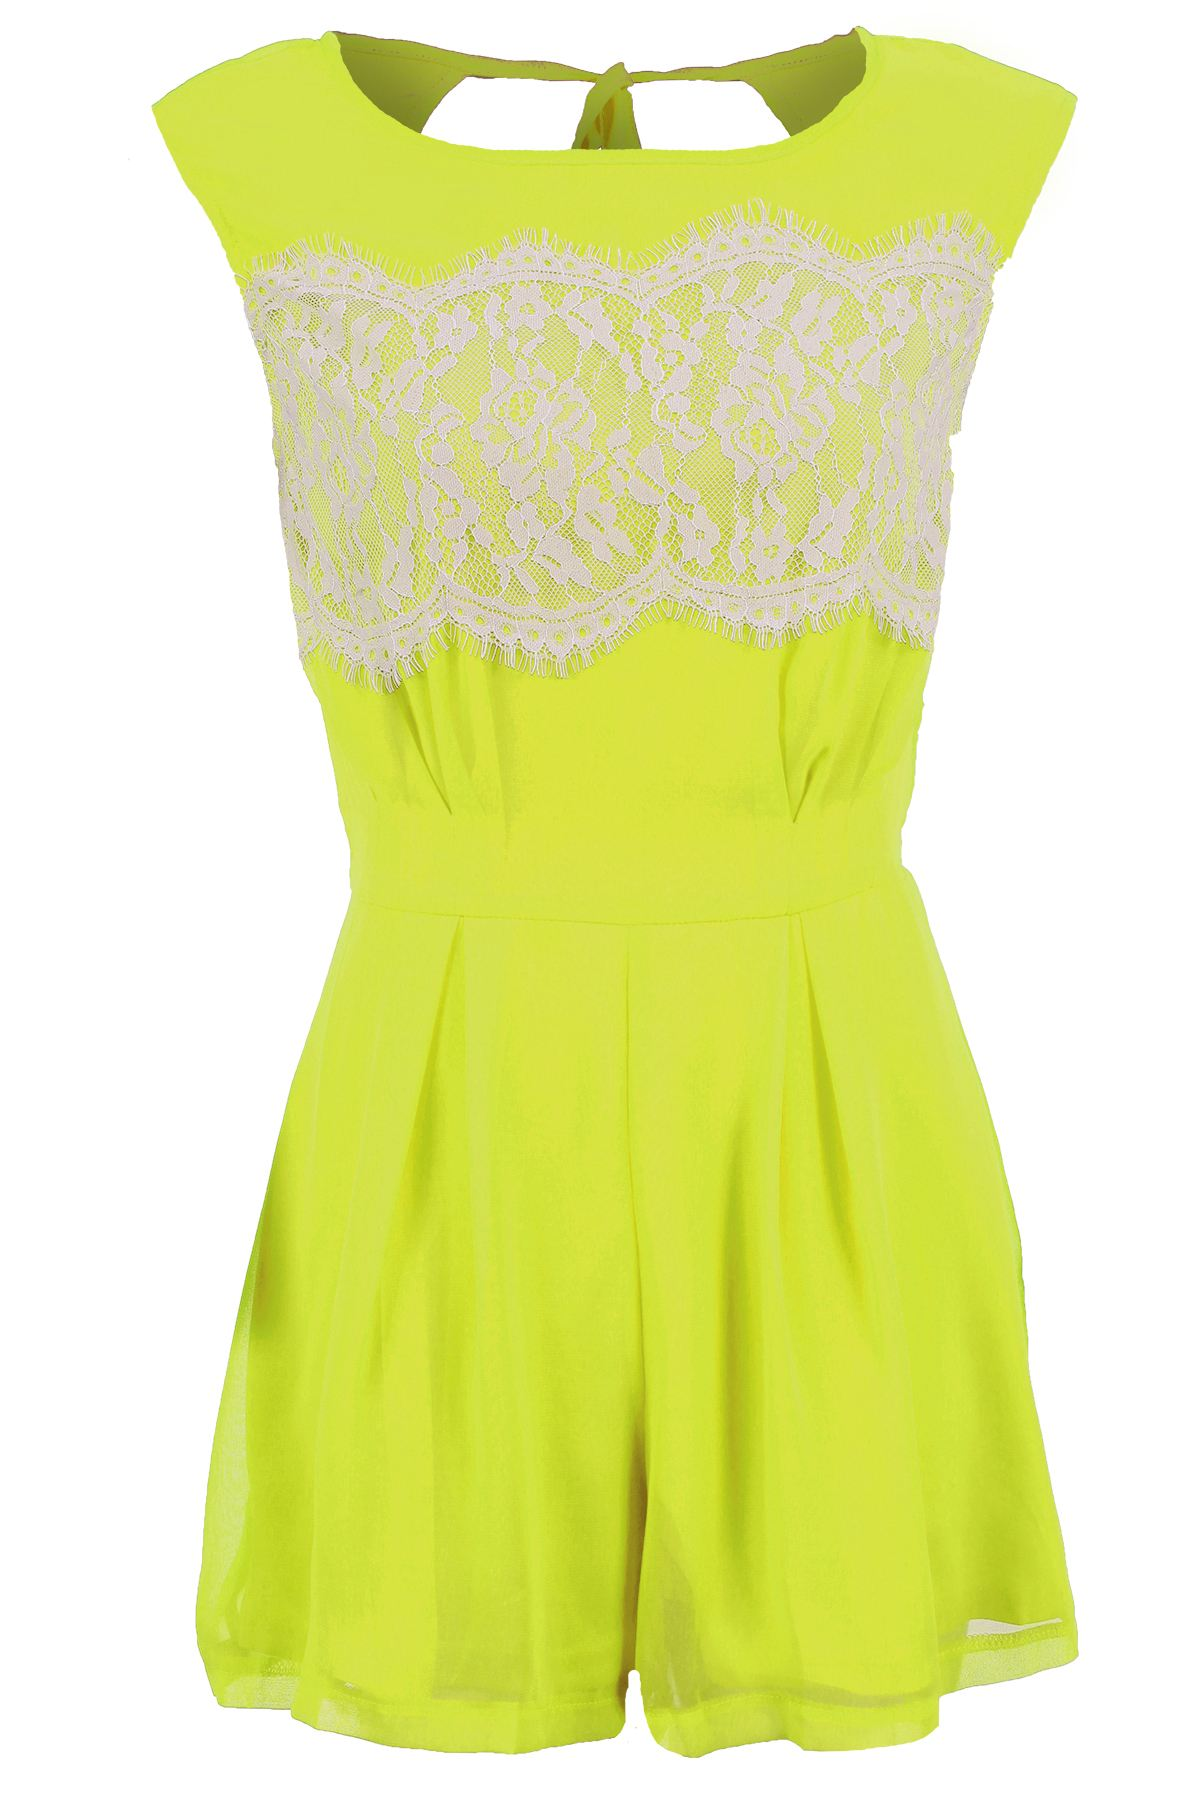 Womens Celeb Sleeveless Open Tie Back Lace Lined Chiffon All In One Playsuit